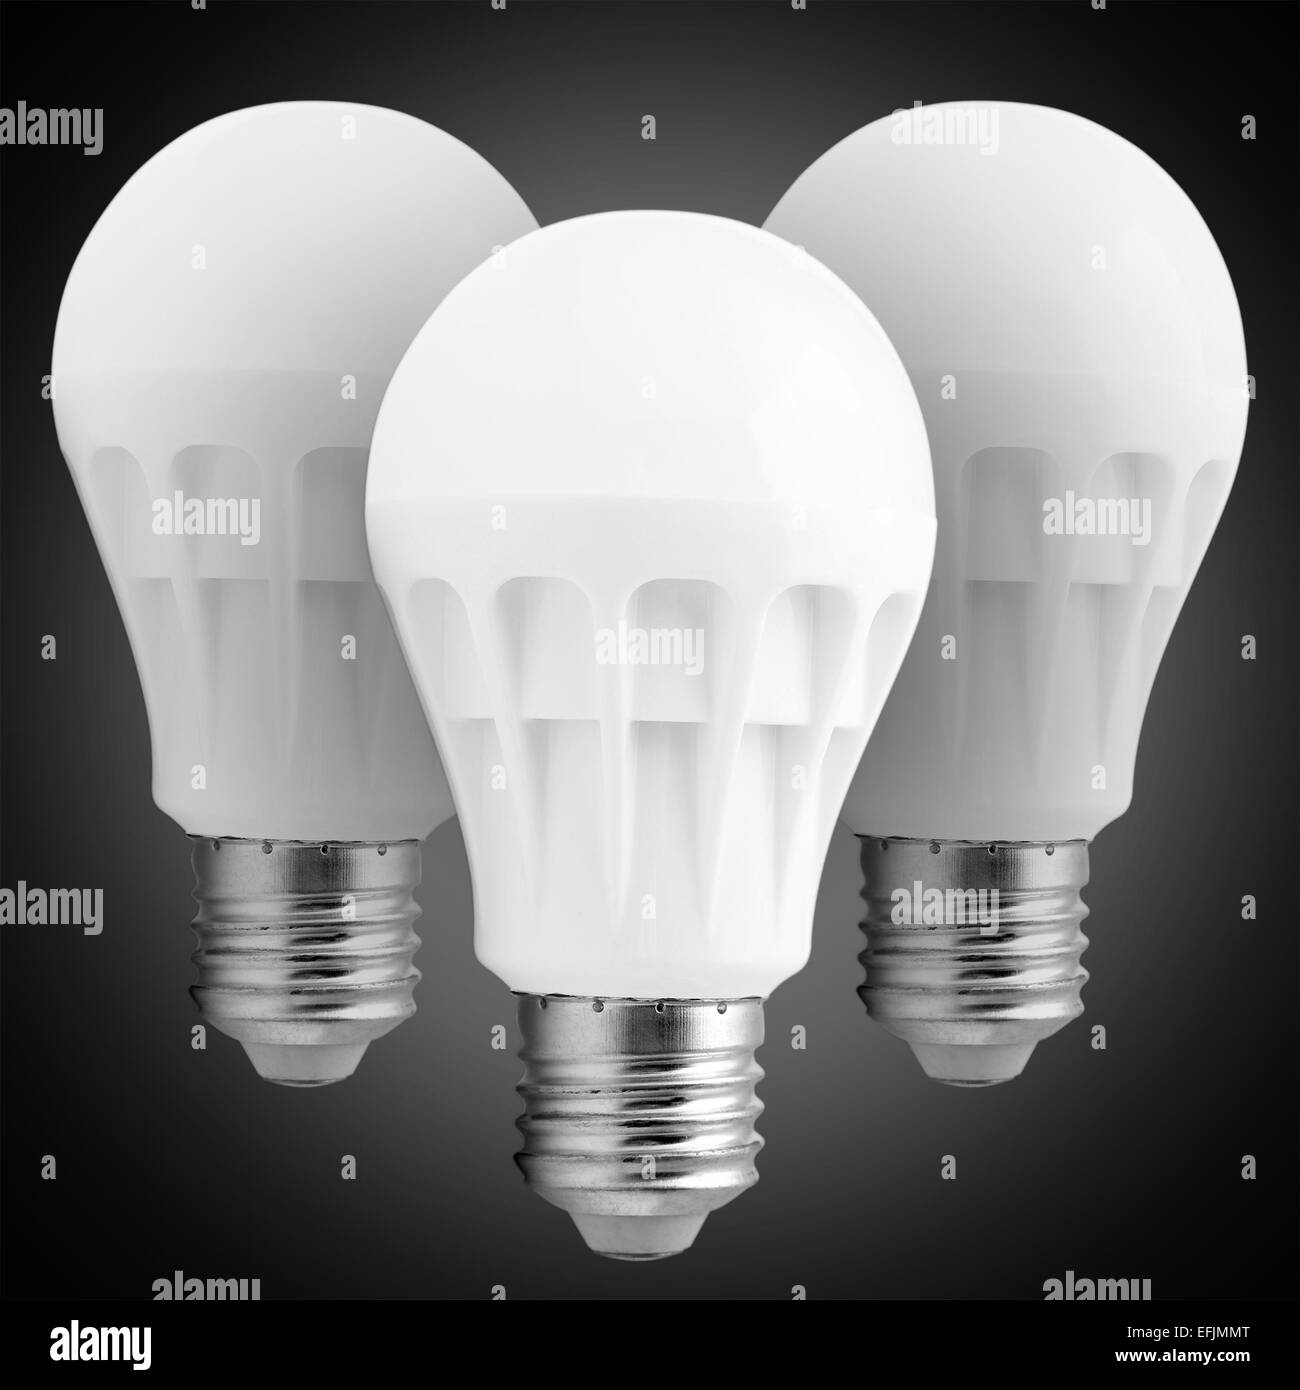 LED lamps with a white flask on a black background. - Stock Image